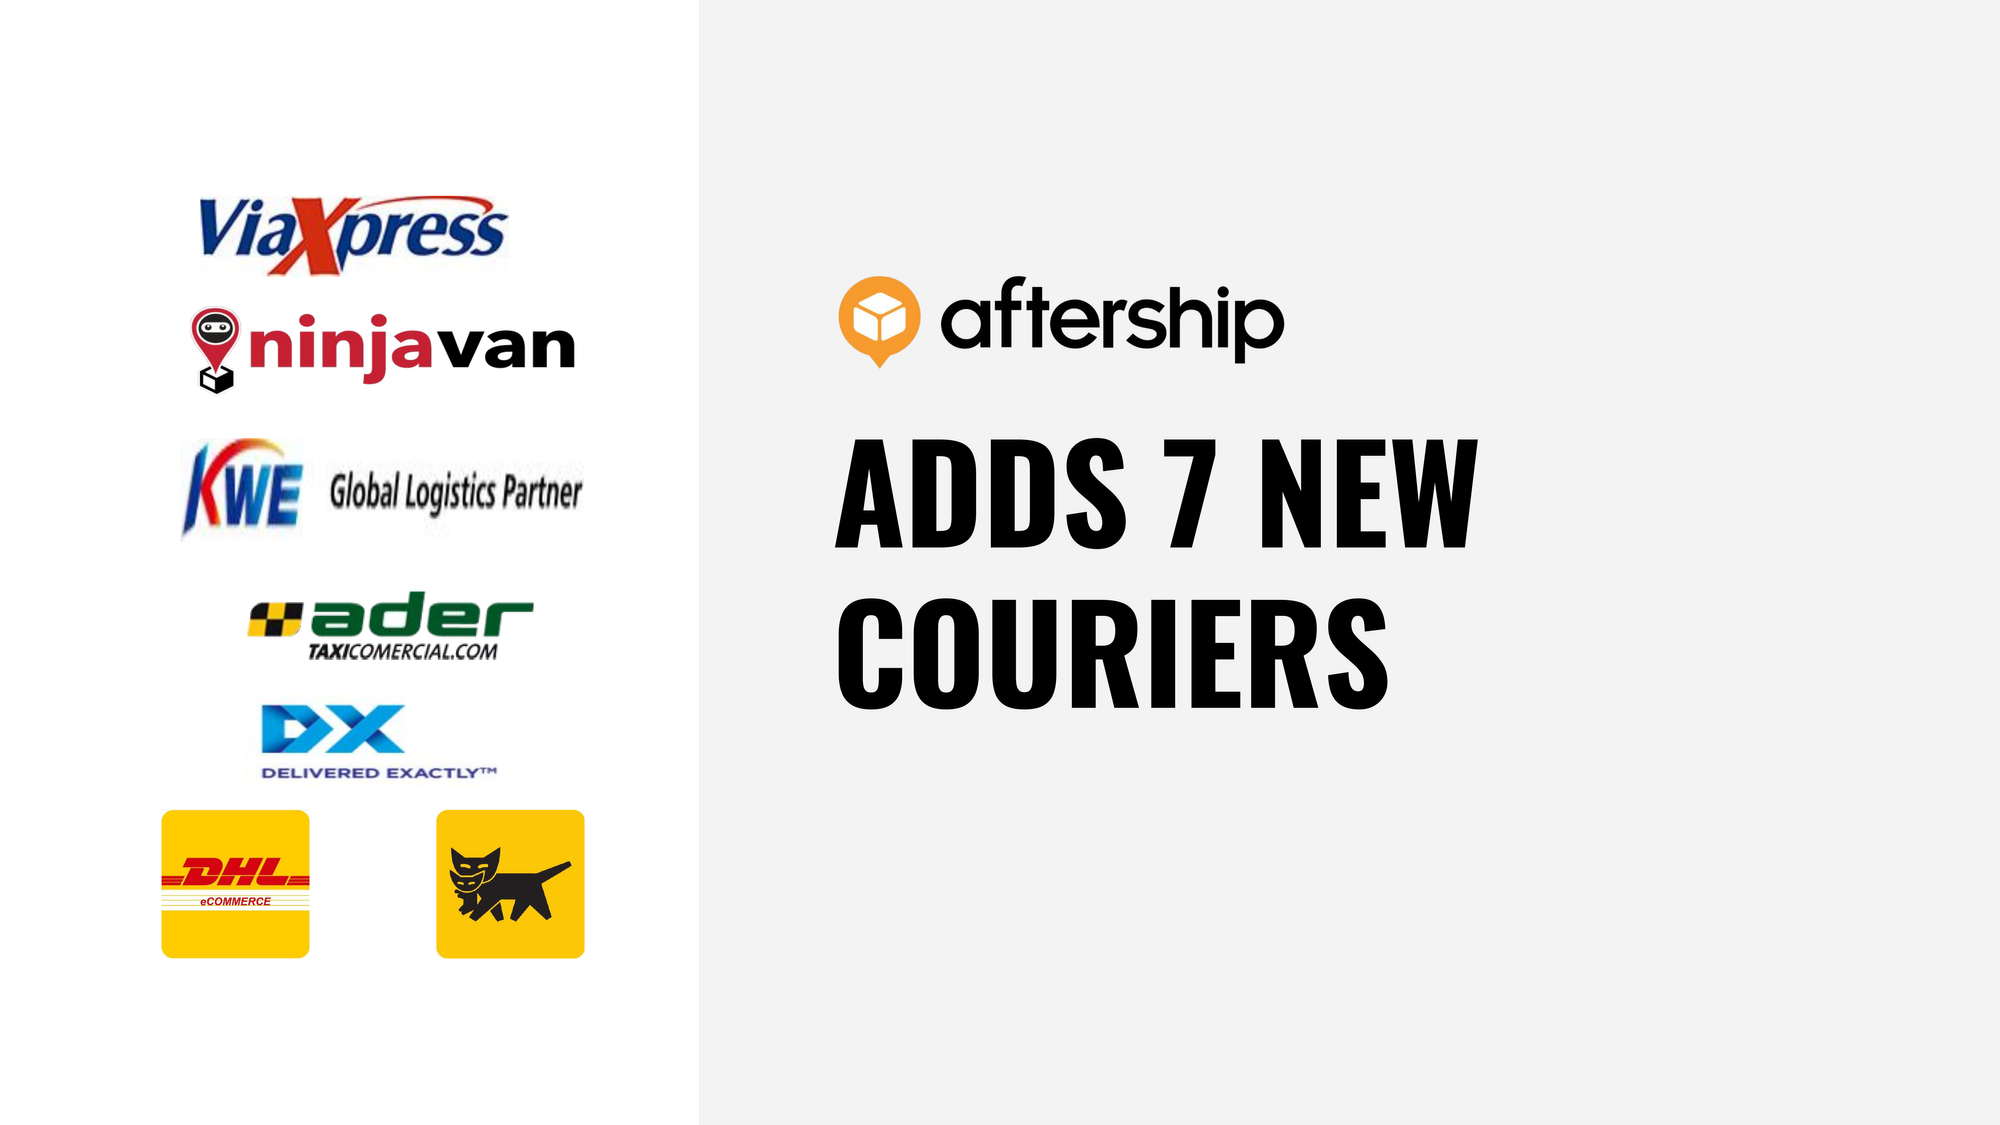 AfterShip adds 7 new couriers this week (28 Sep 2020 to 2 Oct 2020)